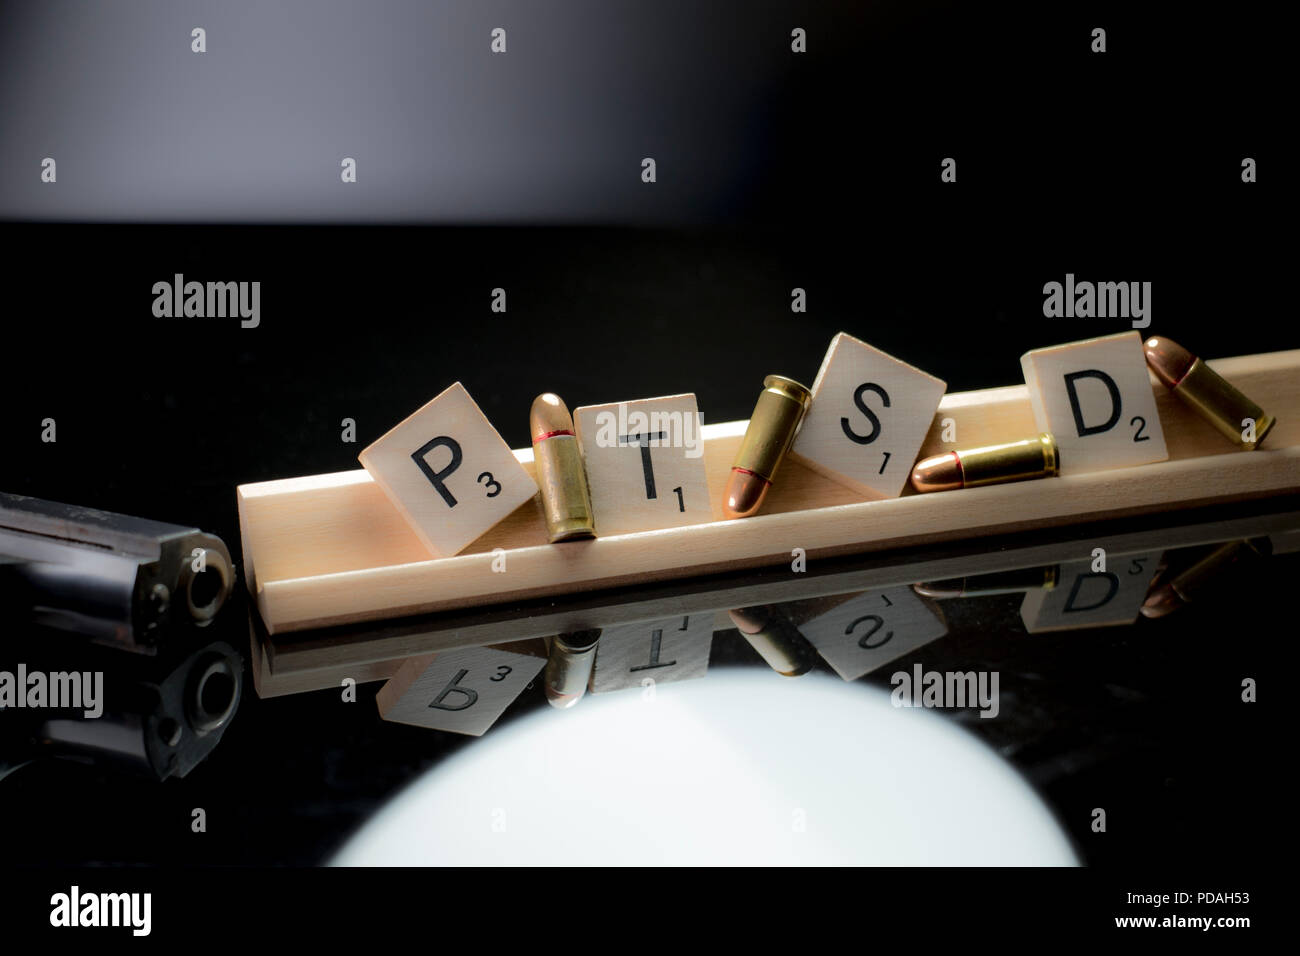 PTSD and self harm awareness concept with text blocks, bullets and black hand gun, - Stock Image